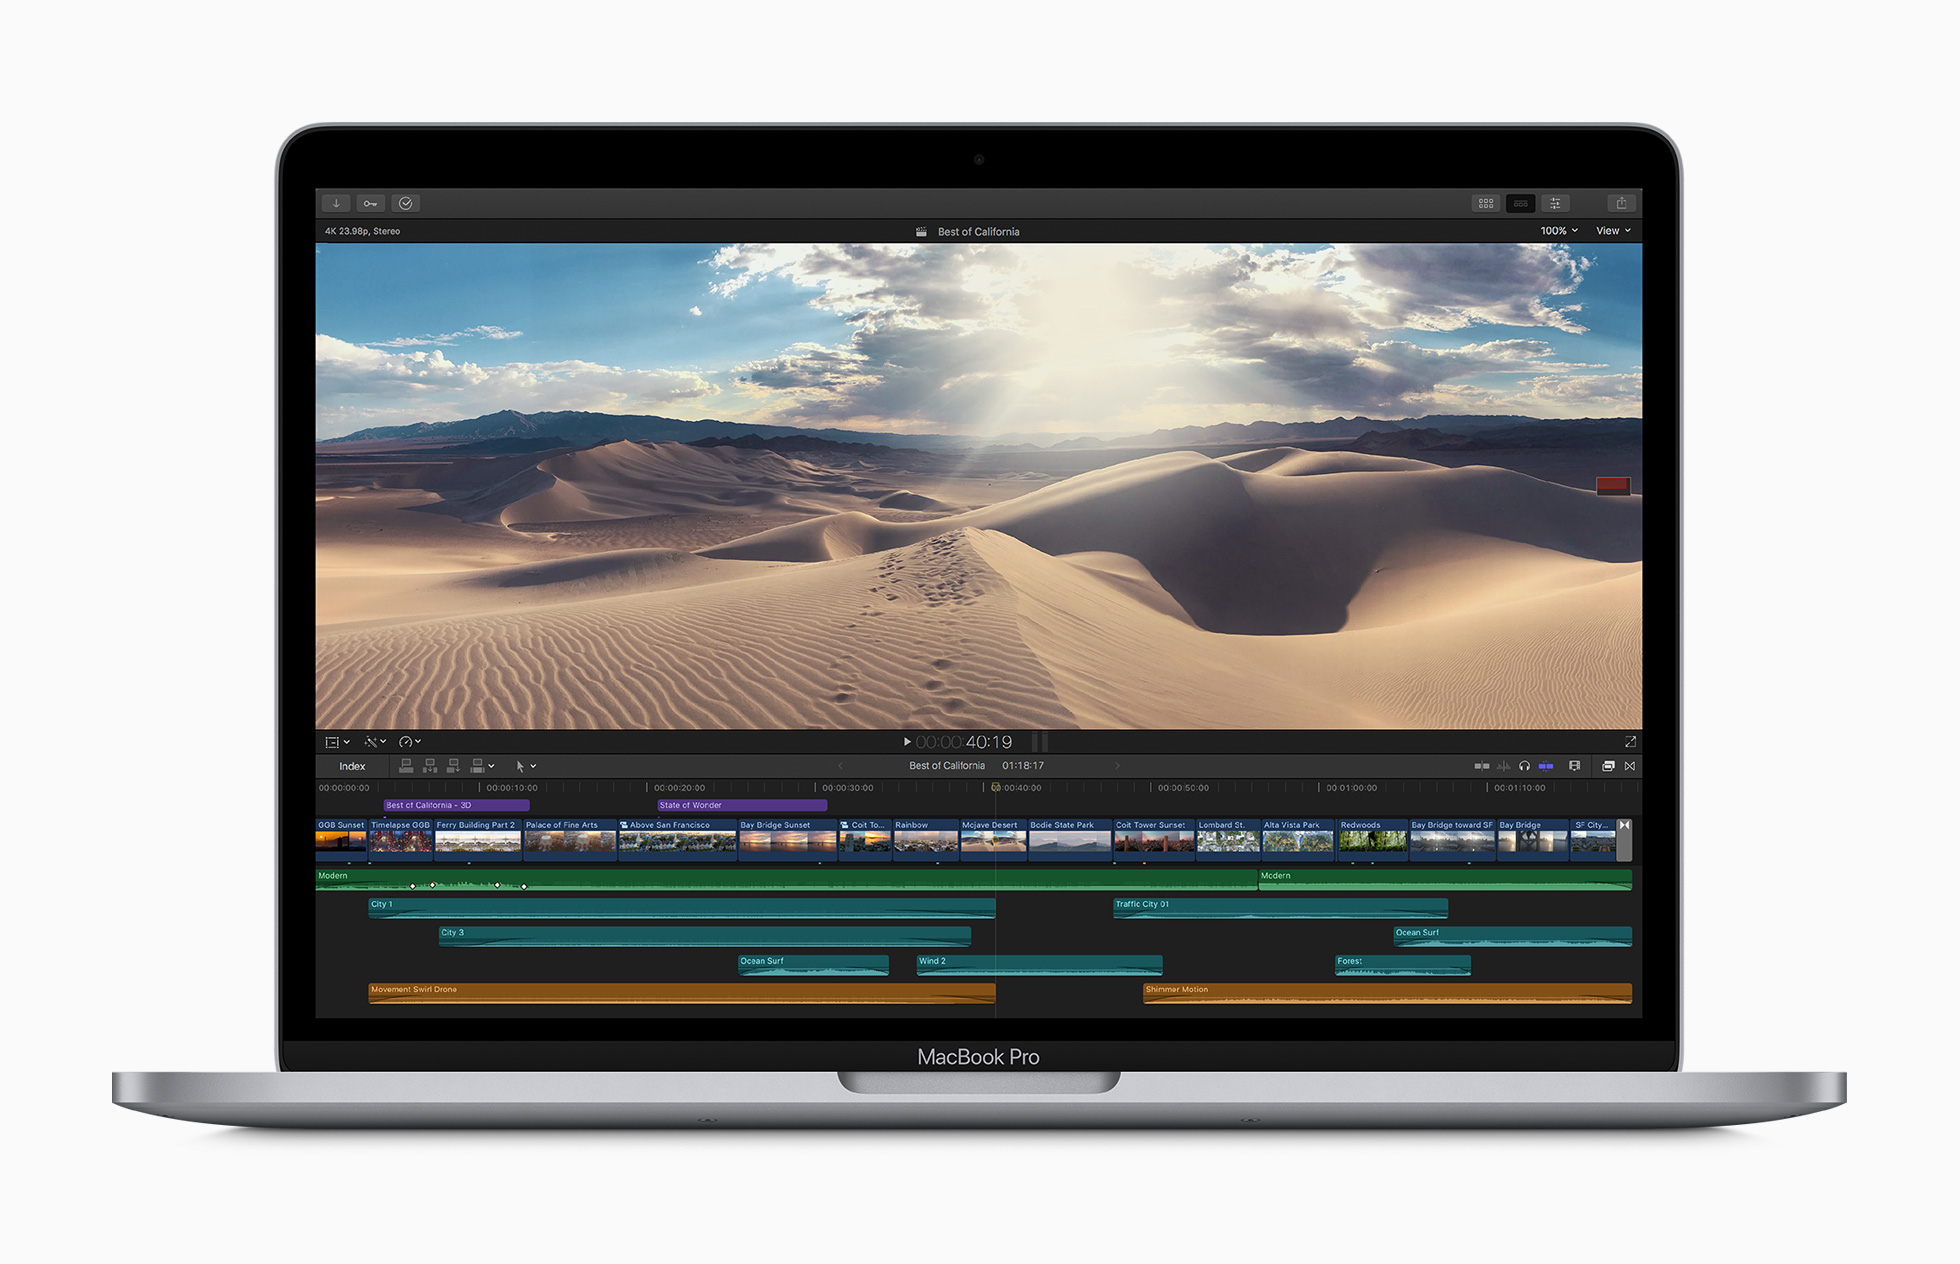 Apple_macbook_pro-13-inch-with-final-cut-pro_screen_05042020_big.jpg.large_2x.jpg (1960×1264)